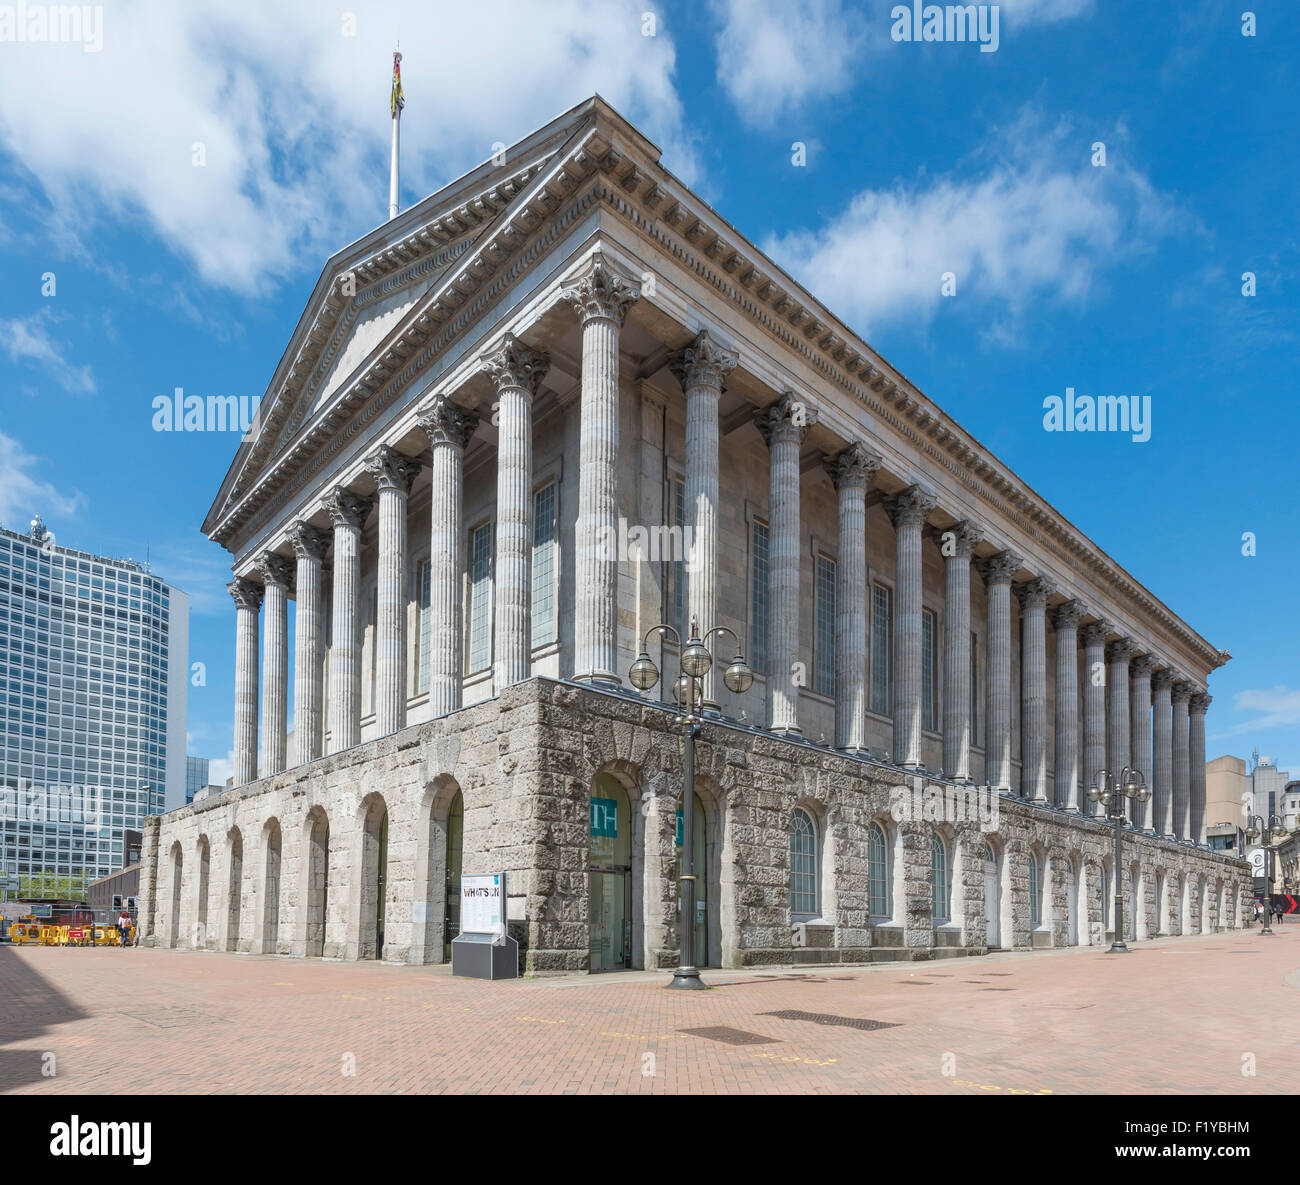 The Birmingham Town Hall, Victoria Square, Birmingham - Stock Image